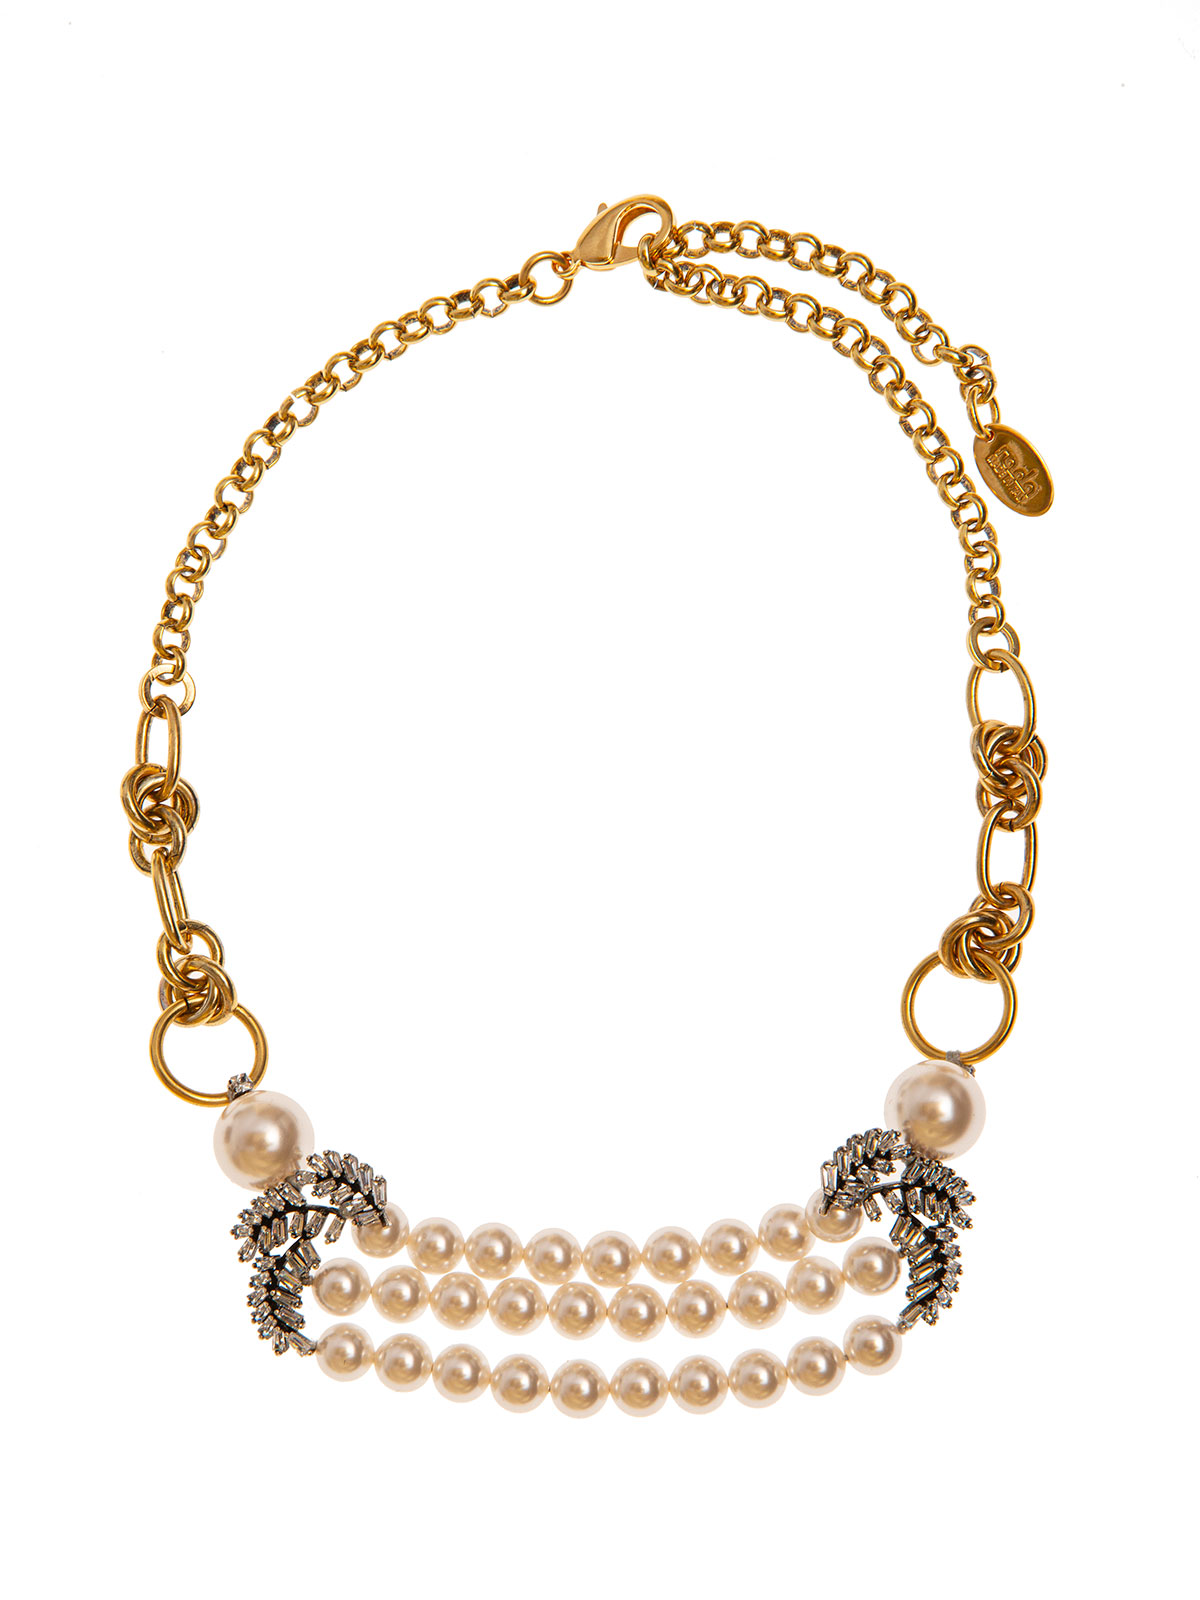 Chain necklace with pearl decoration and crystal leaves